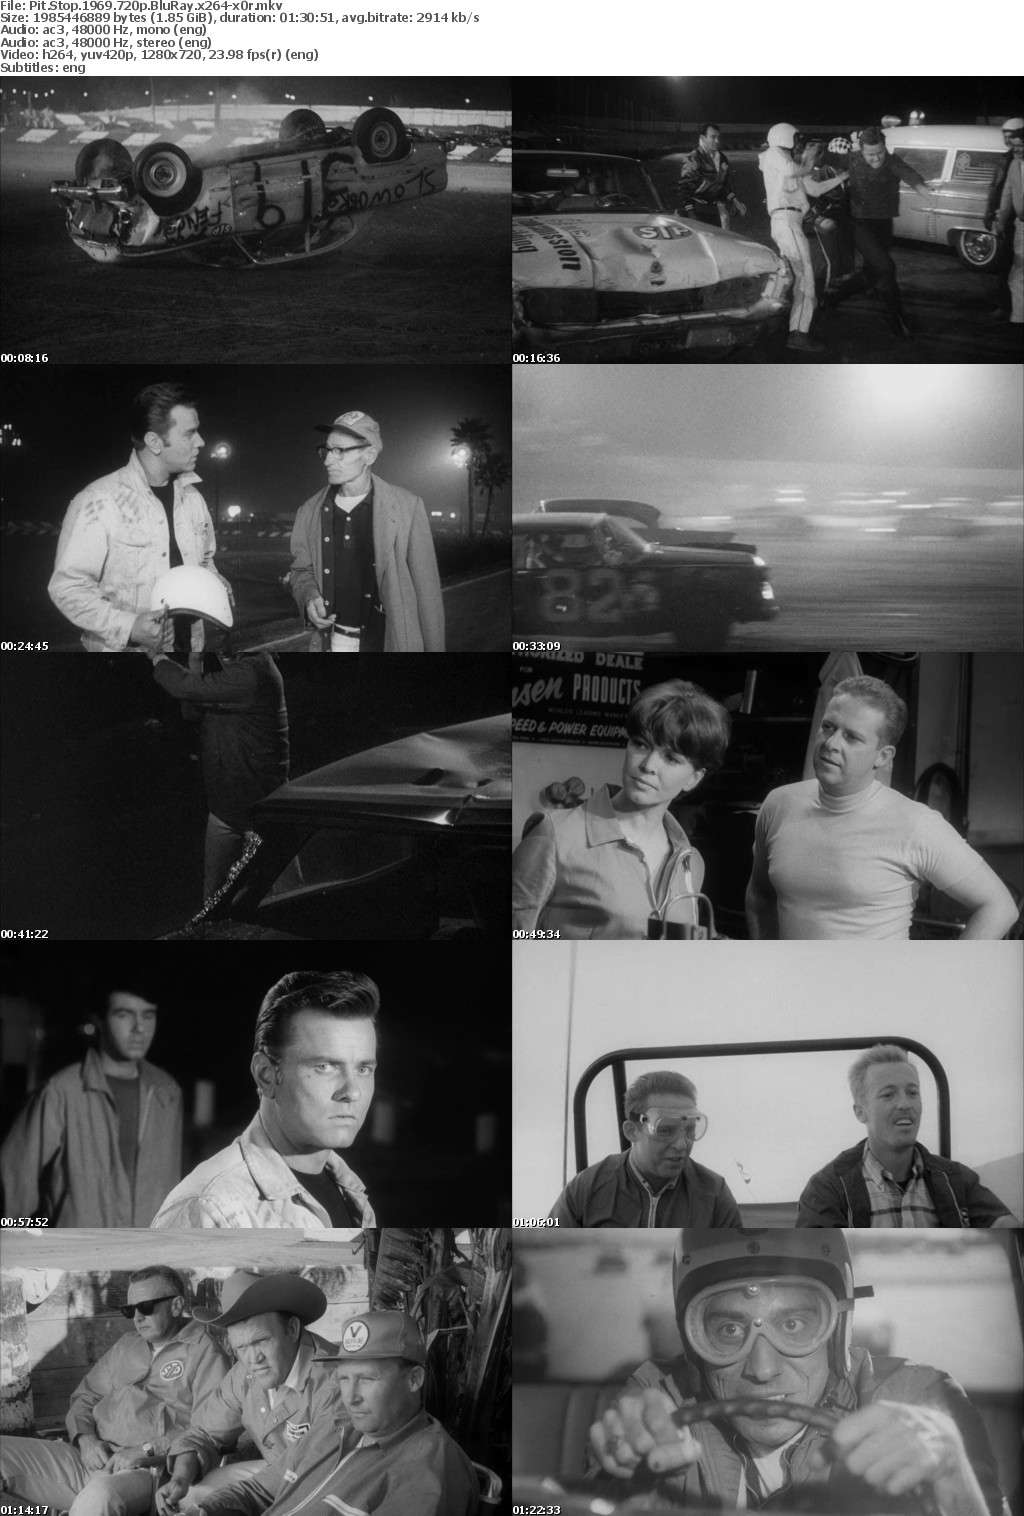 Pit Stop 1969 720p BluRay x264-x0r